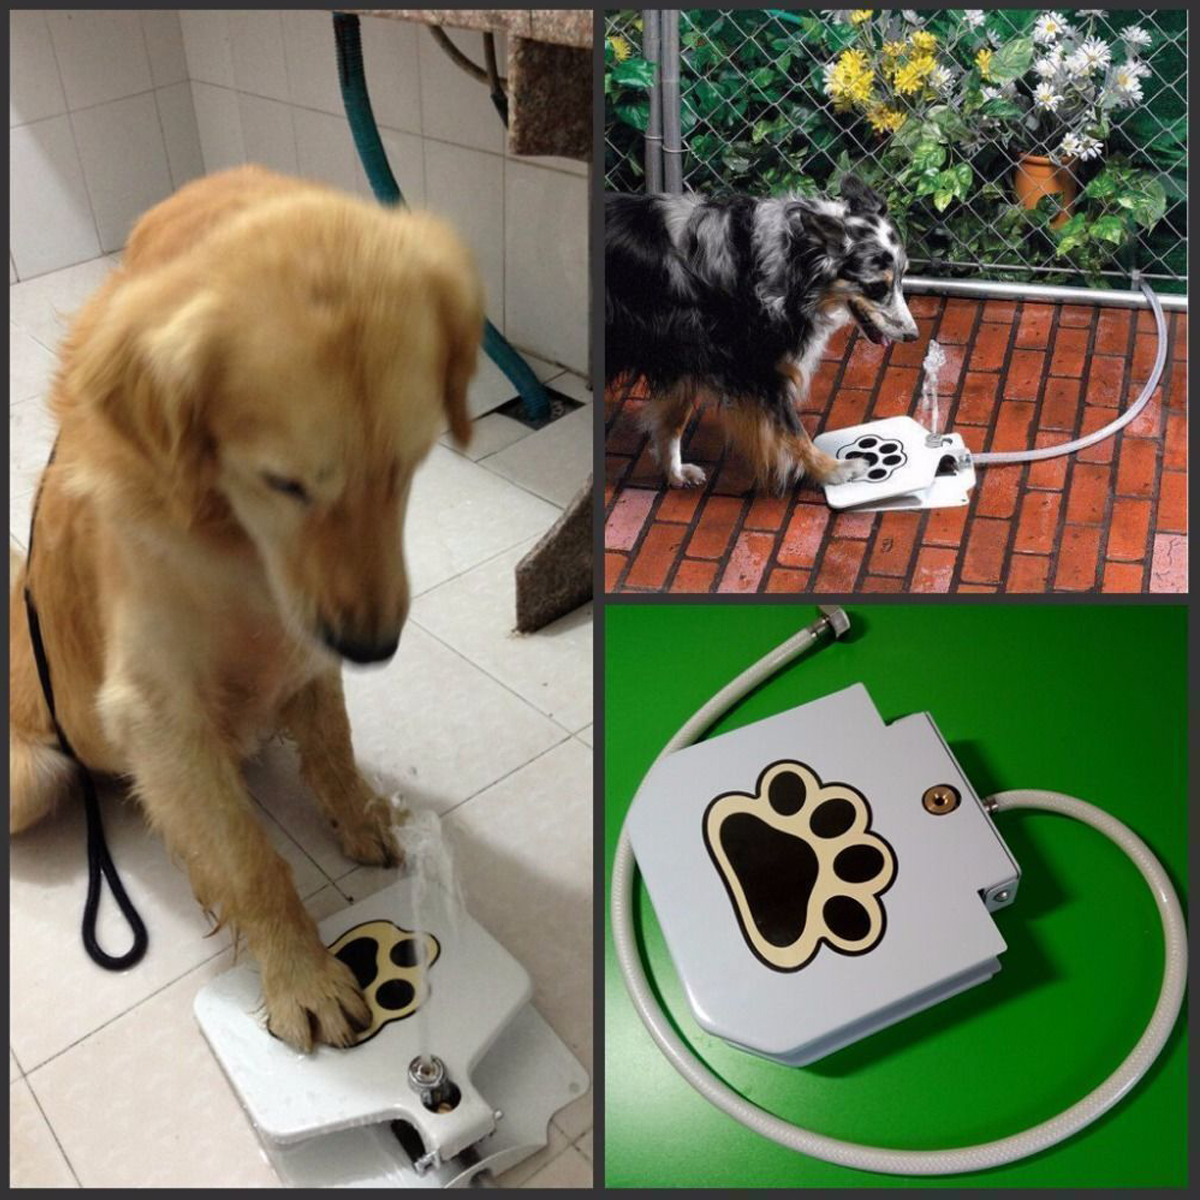 Outdoor Trouble-Free Dog Pet Drinking Doggie Activated Water Fountain Dispenser 100cm Water Pipe